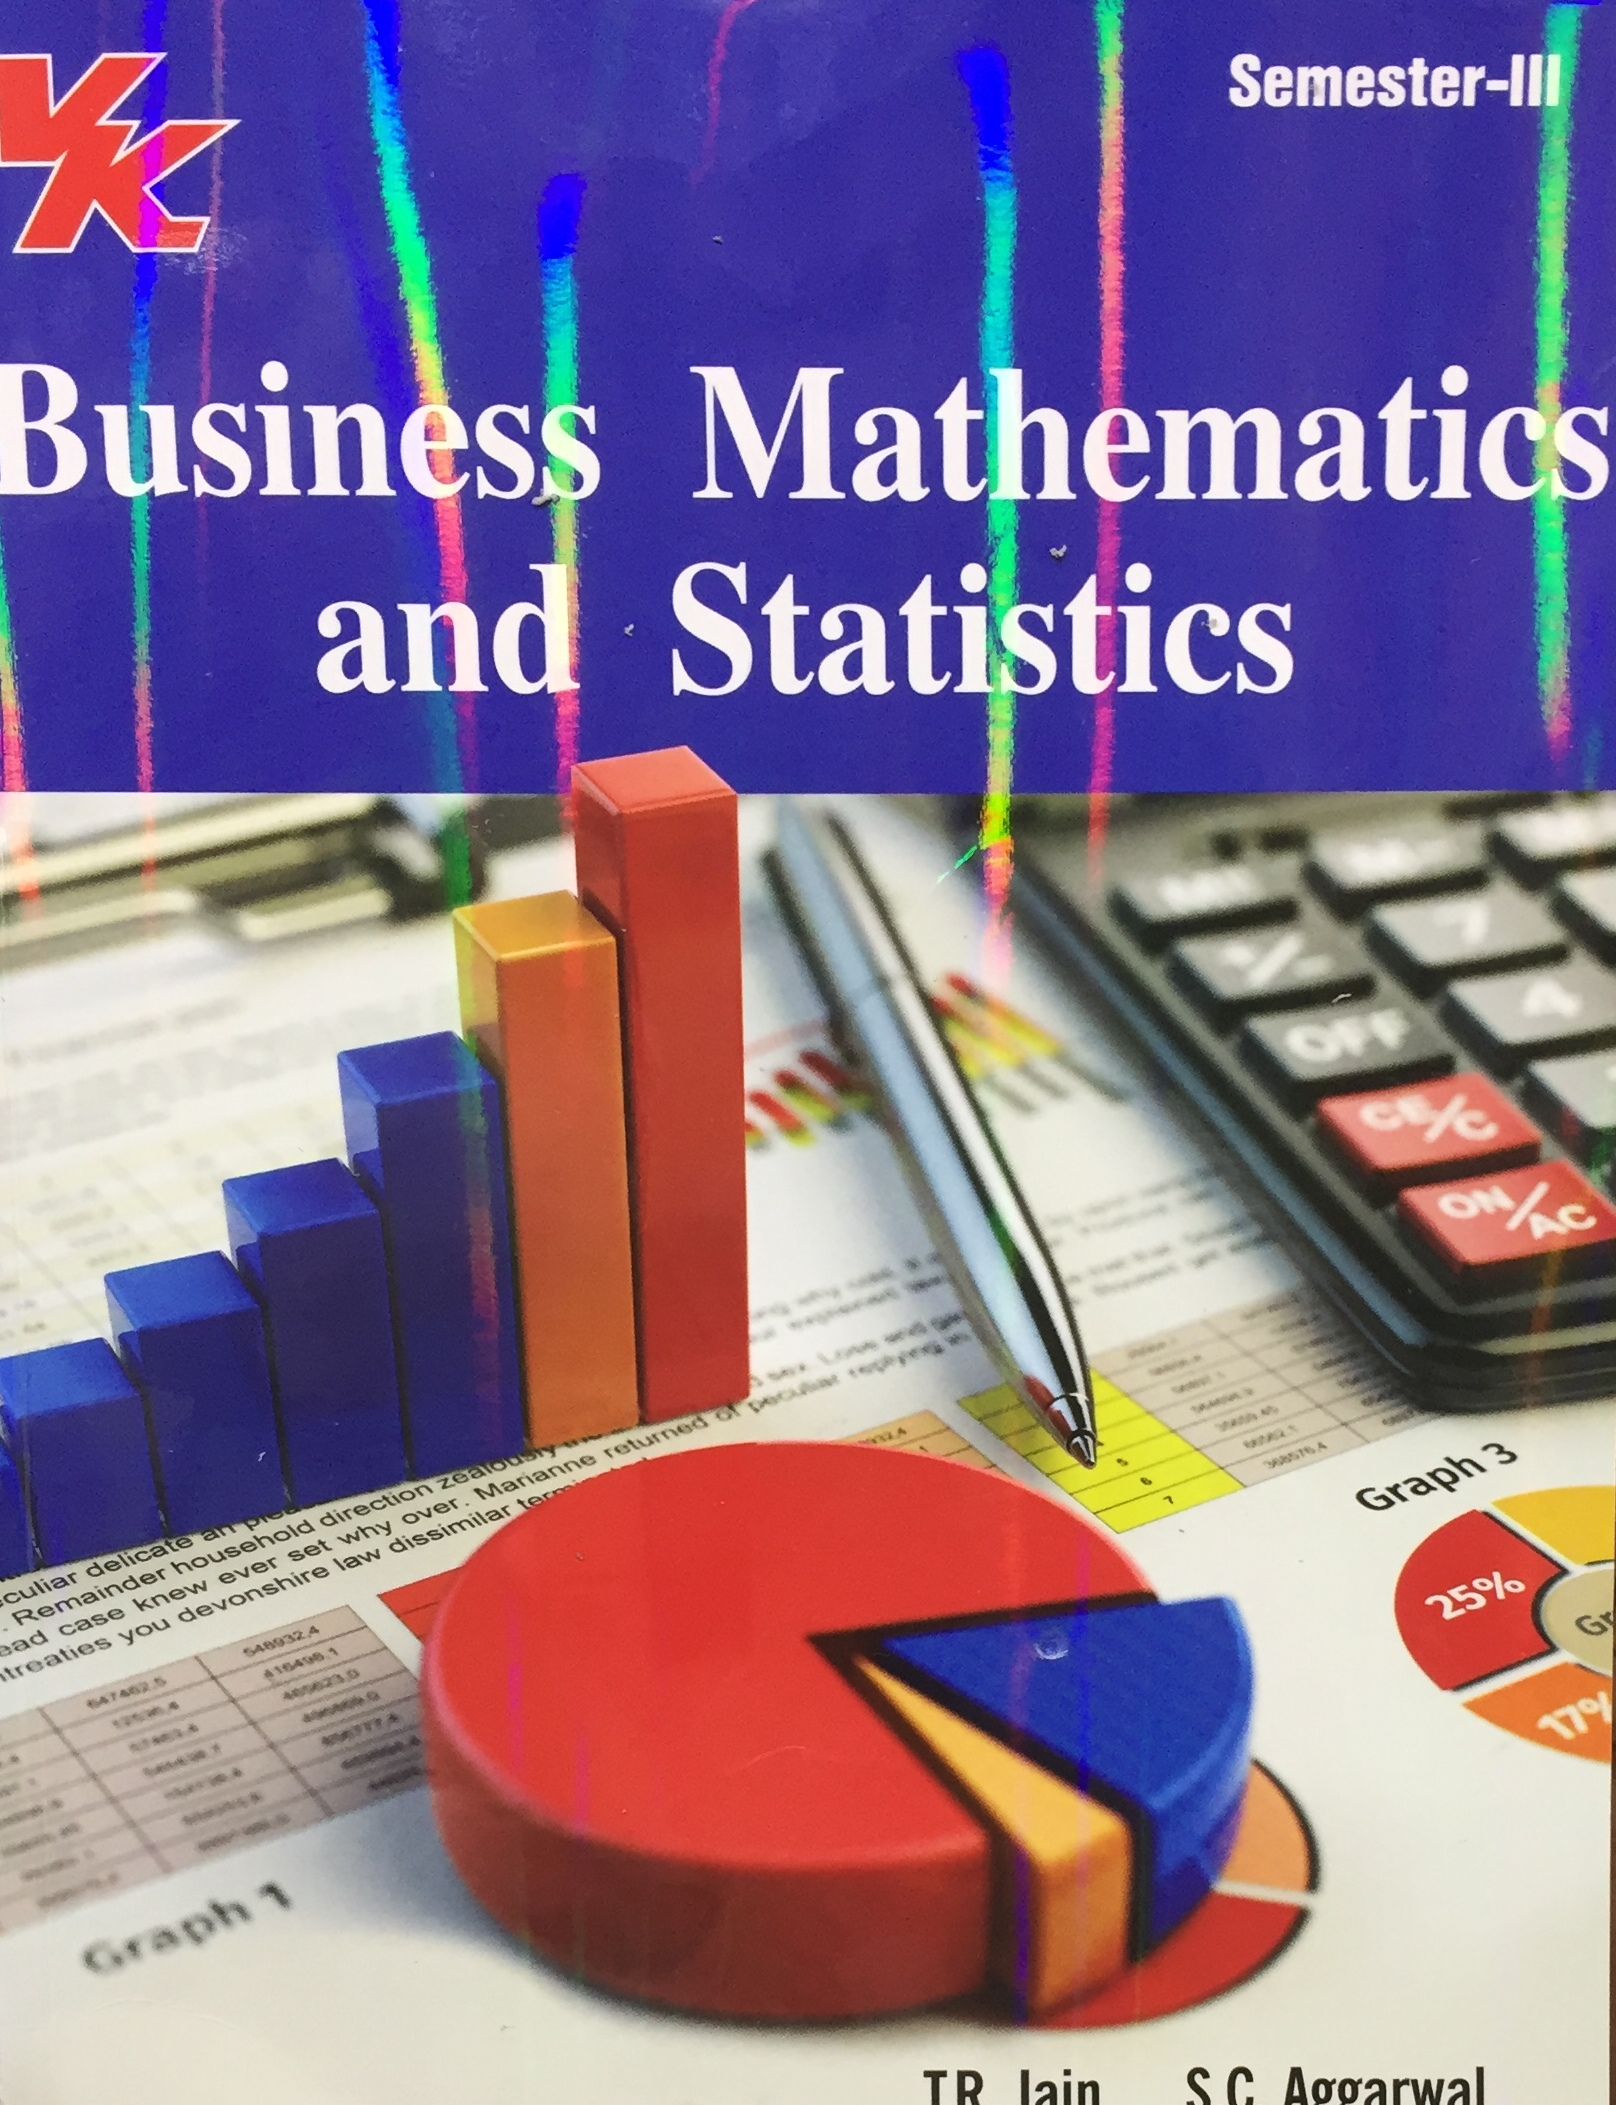 V K Publisher Business Mathematics and Statistics for B.Com-III Sem Punjab University 2018 edition (V K publishing) For Dec 2018 Exam